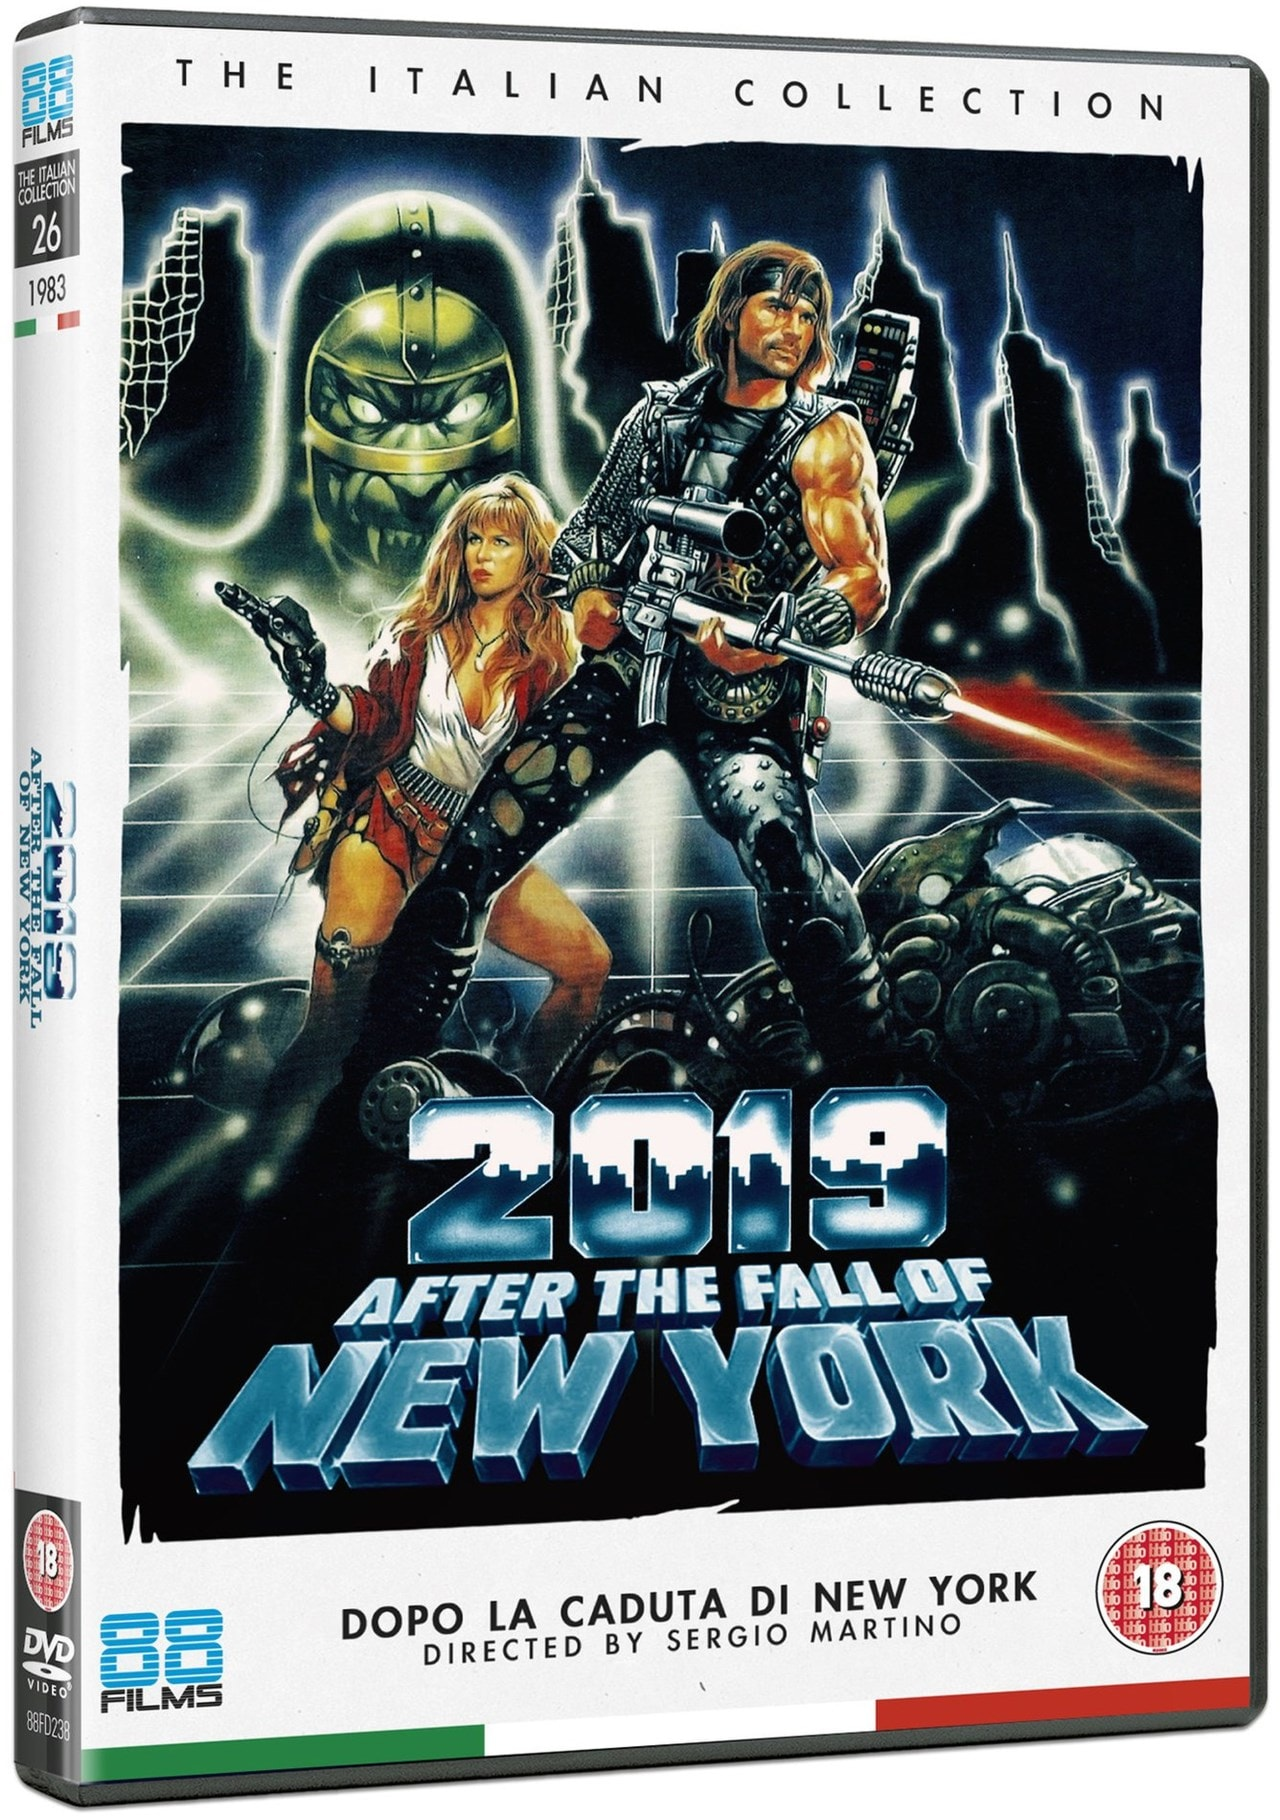 2019 - After the Fall of New York - 2